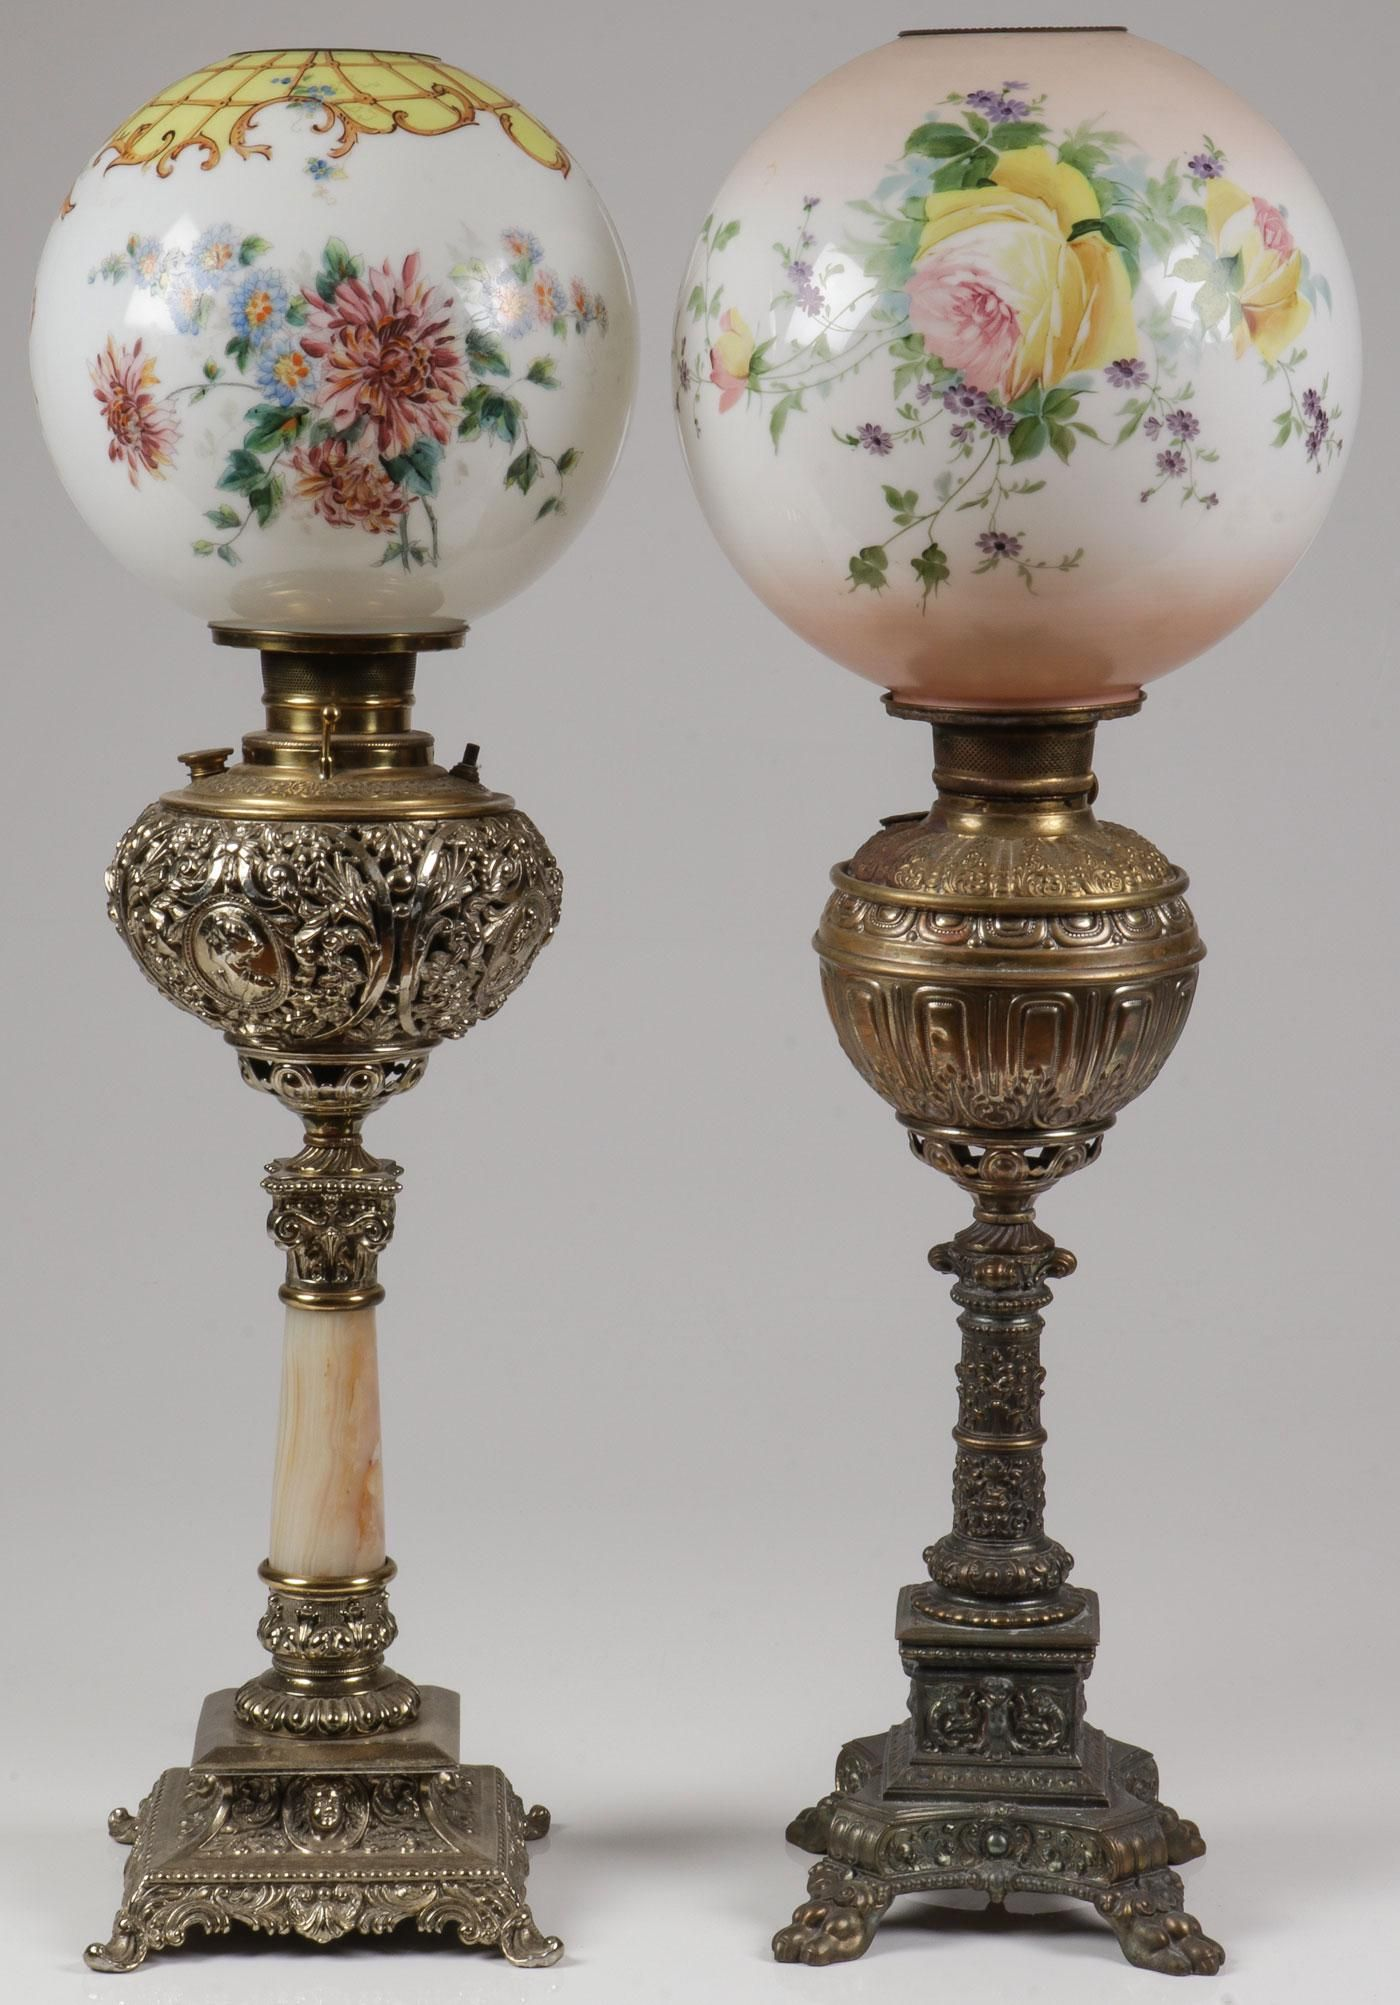 A PAIR OF SPECTACULAR BANQUET LAMPS, 19TH C